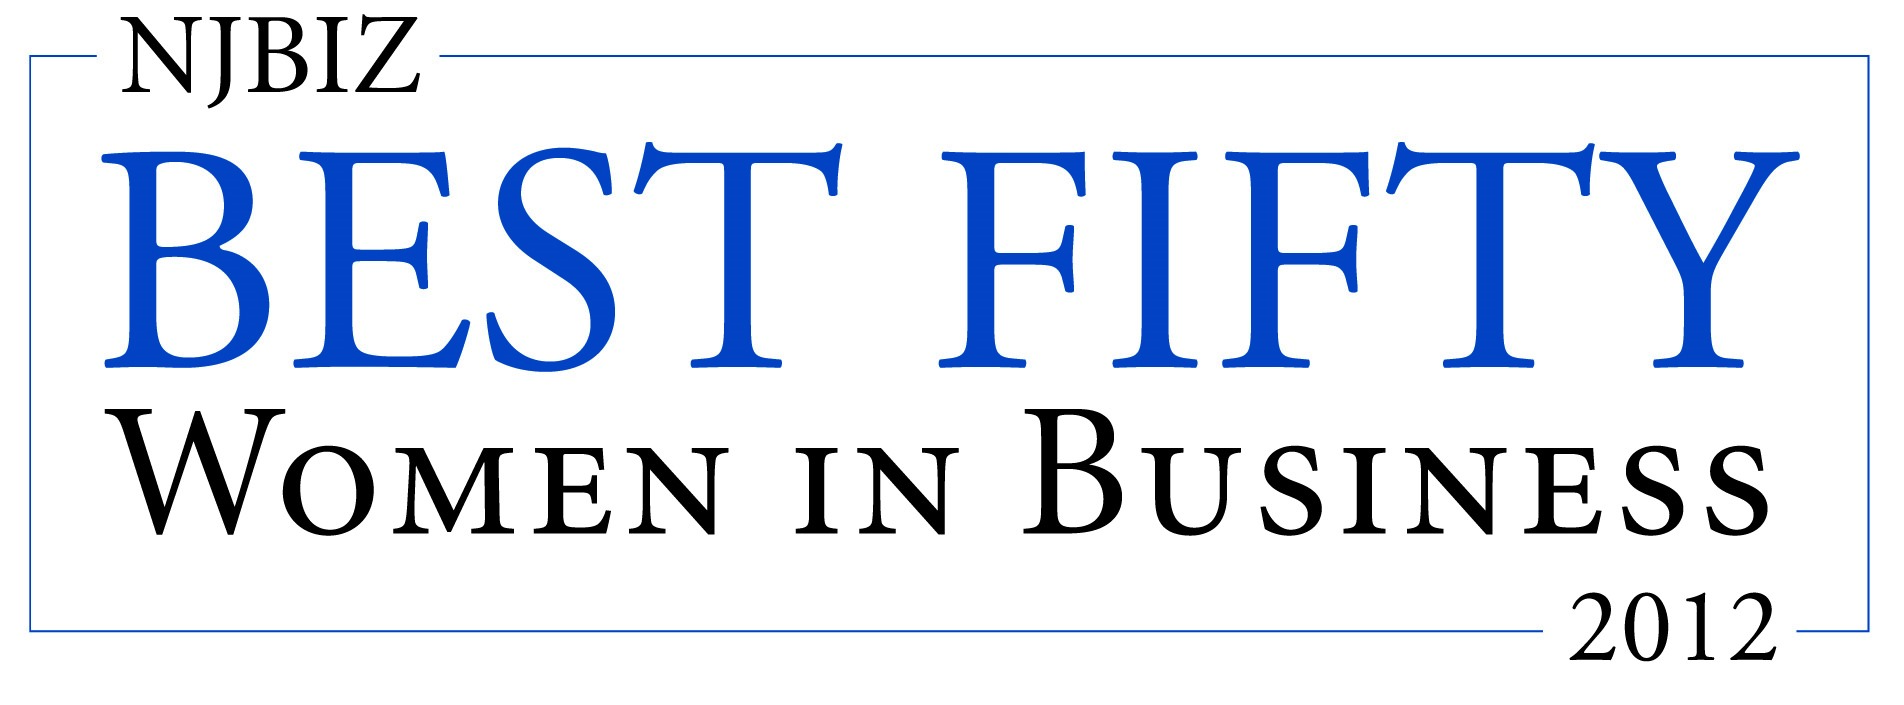 NJBIZ Best 50 Women in Business 2012